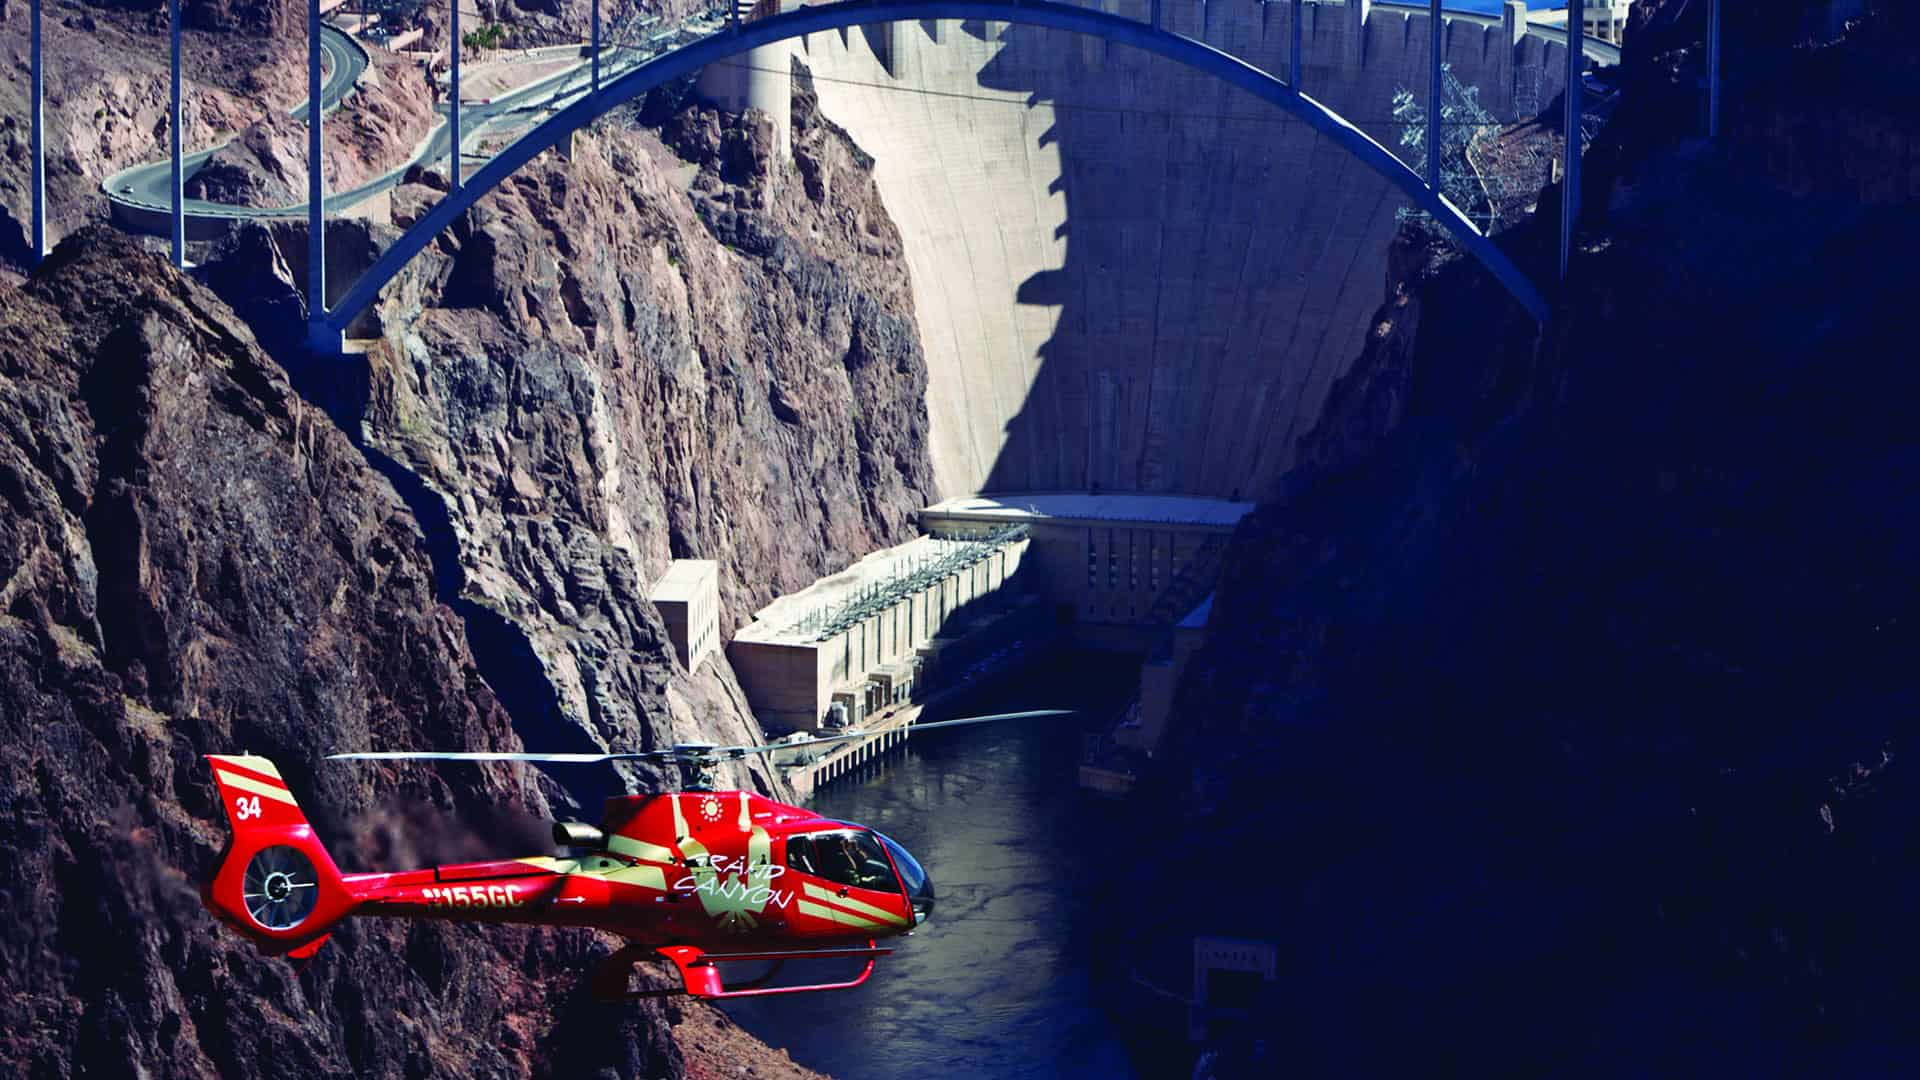 Tinggly Helicopter Ride Over the Hoover Dam - Romantic places in Las Vegas